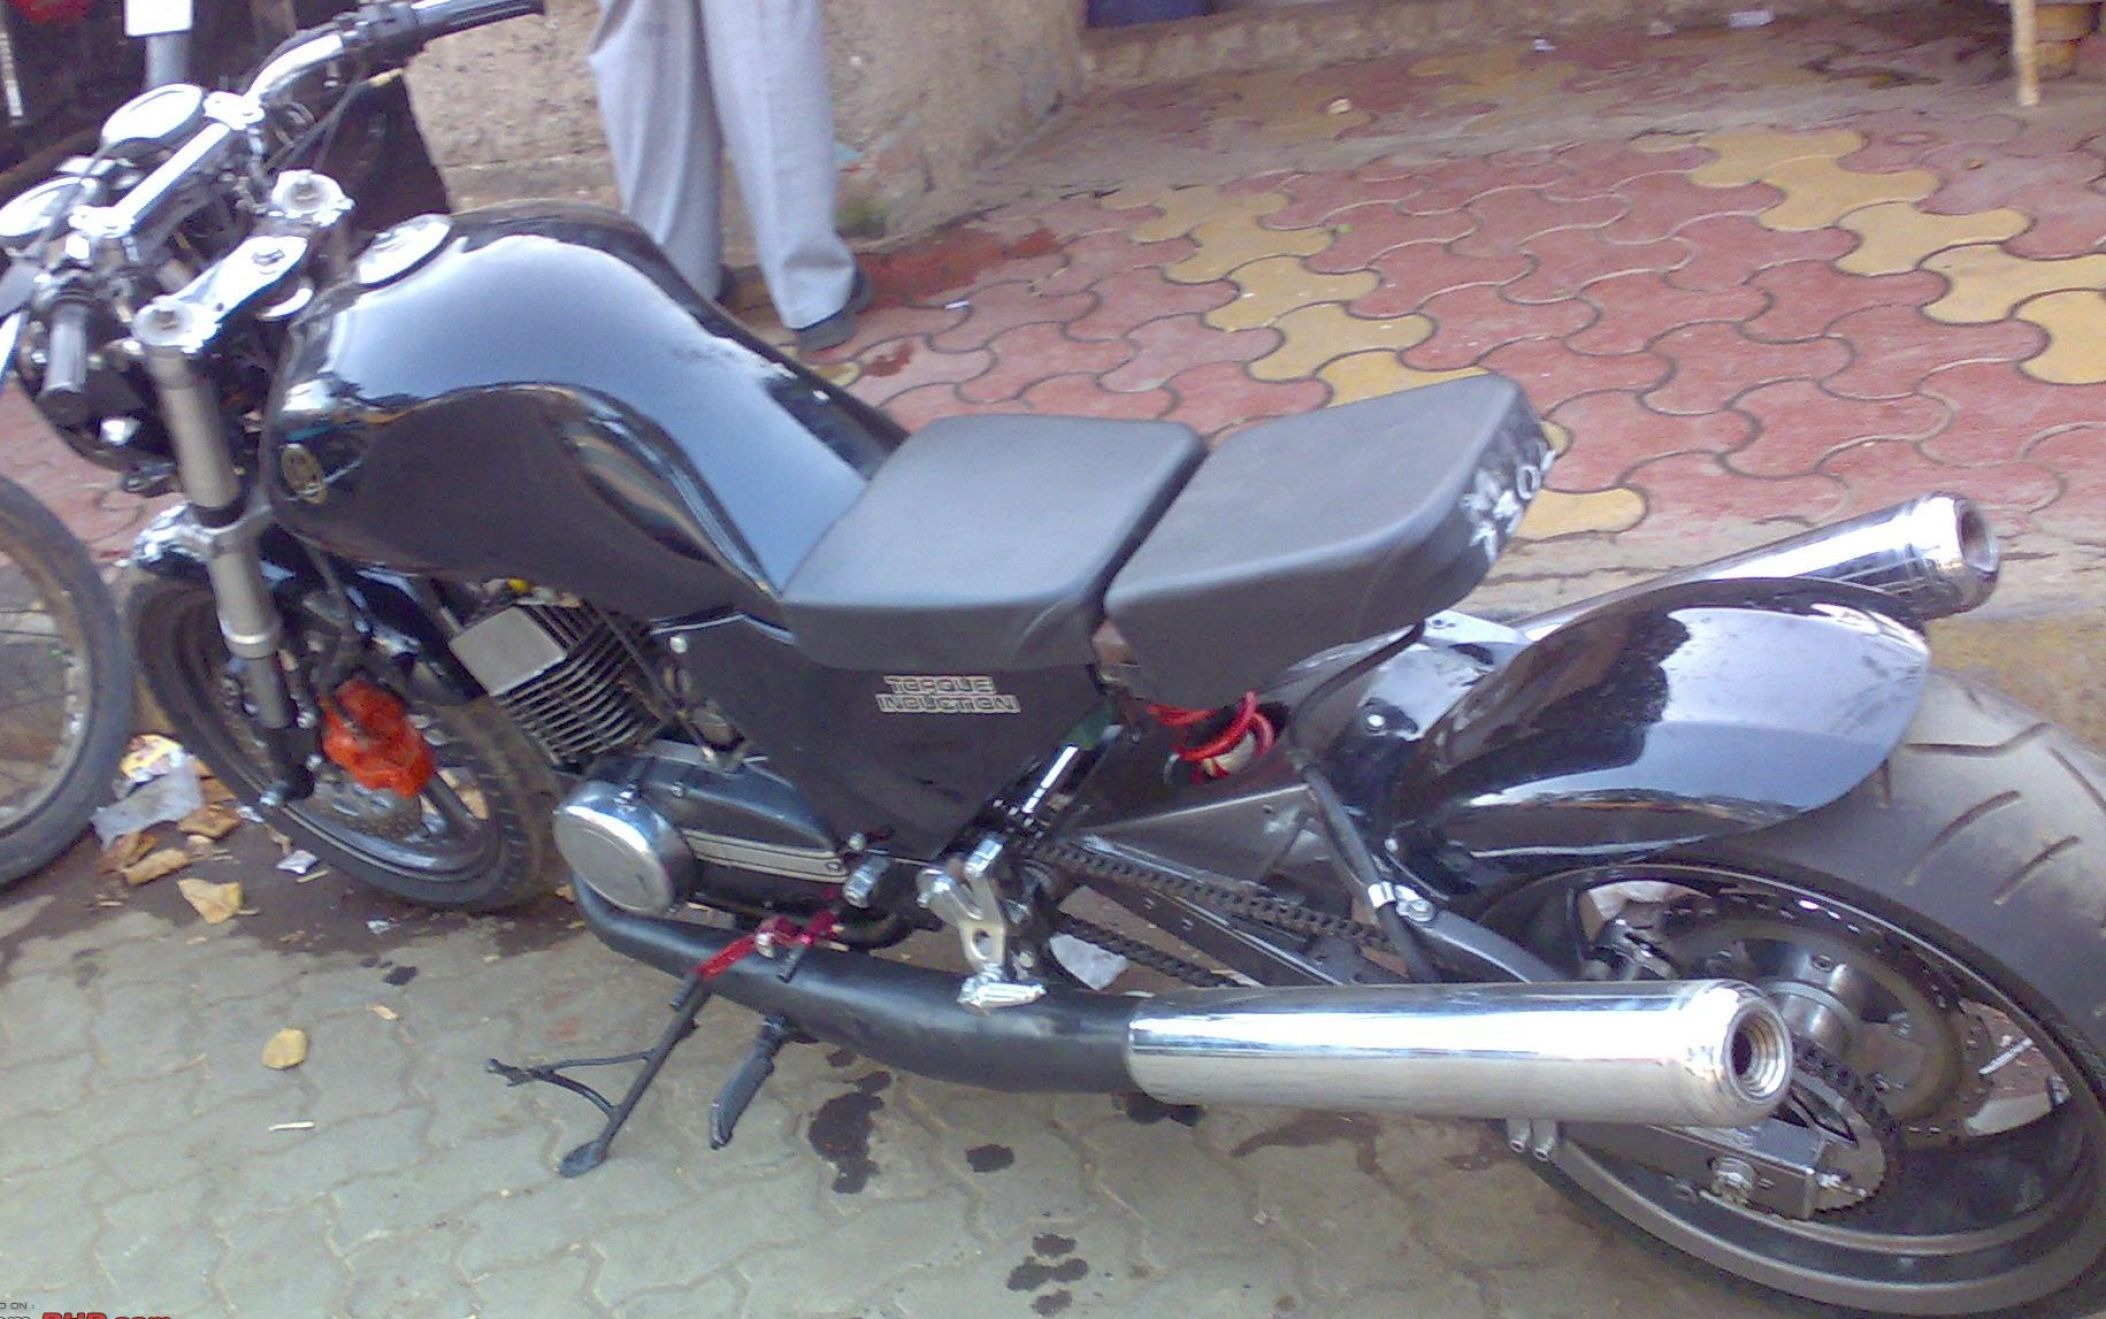 New Latest Bikes In India 2014 | newhairstylesformen2014.com